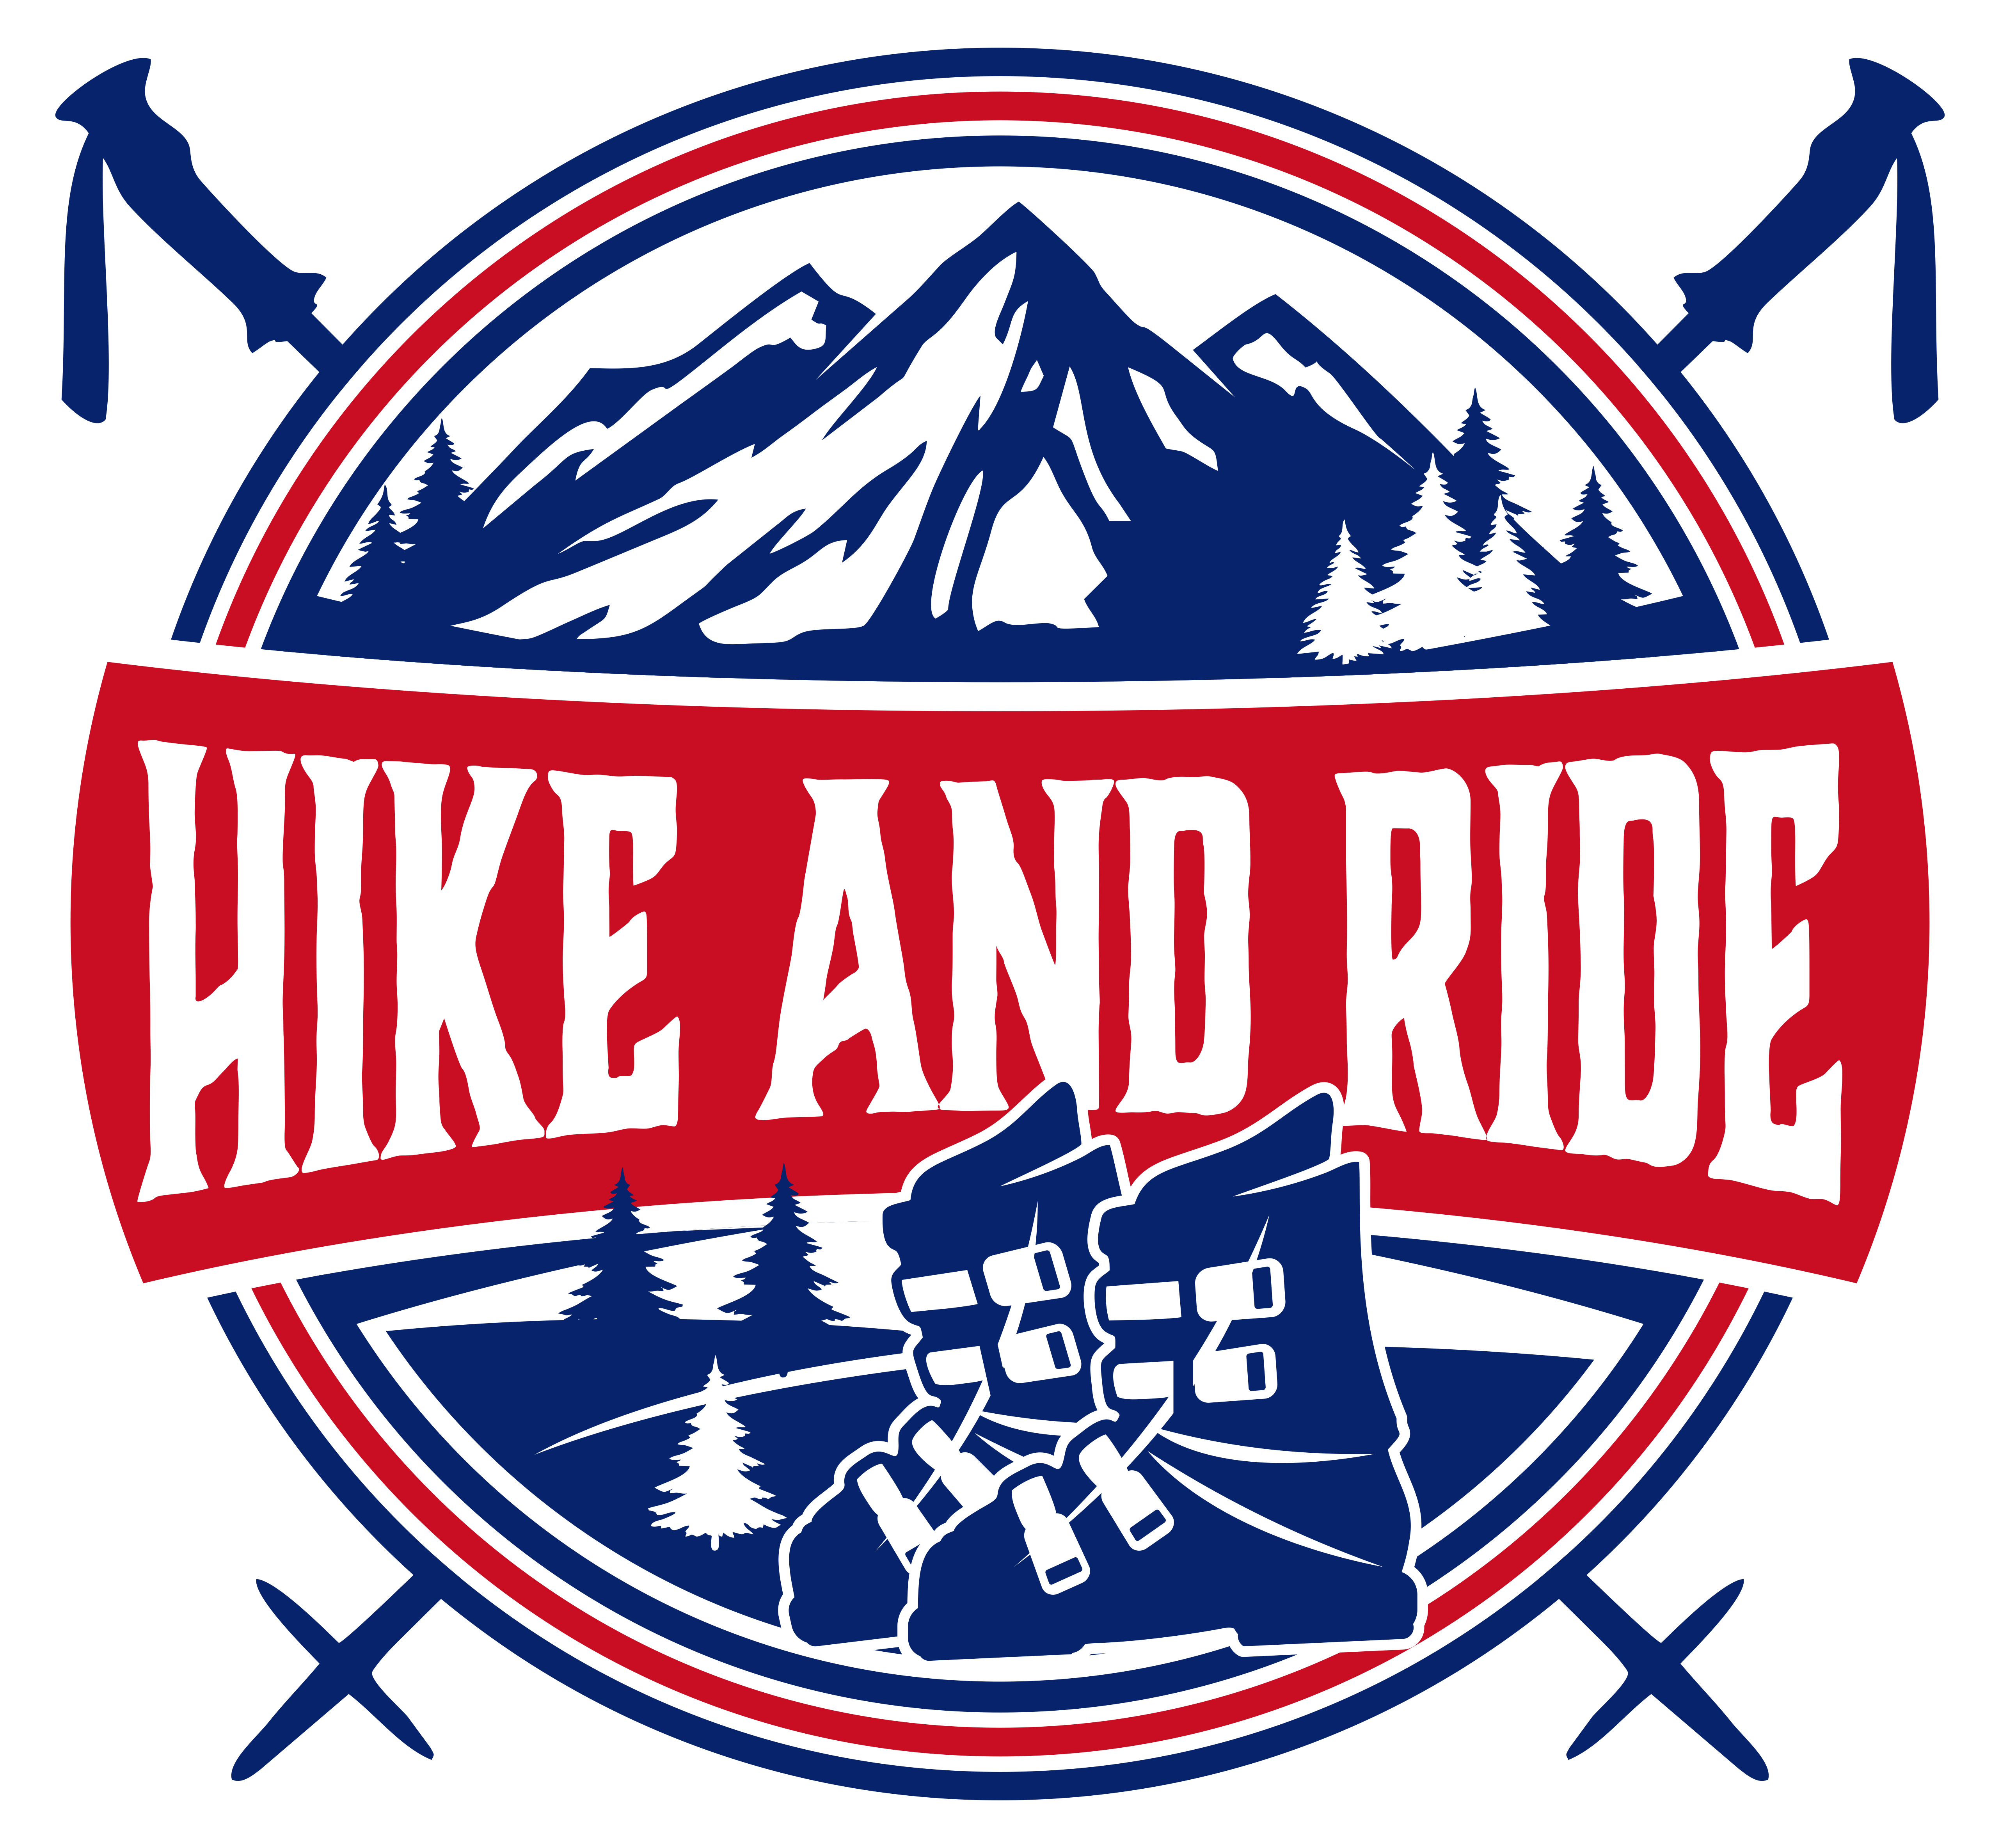 Logo for Hike and Ride